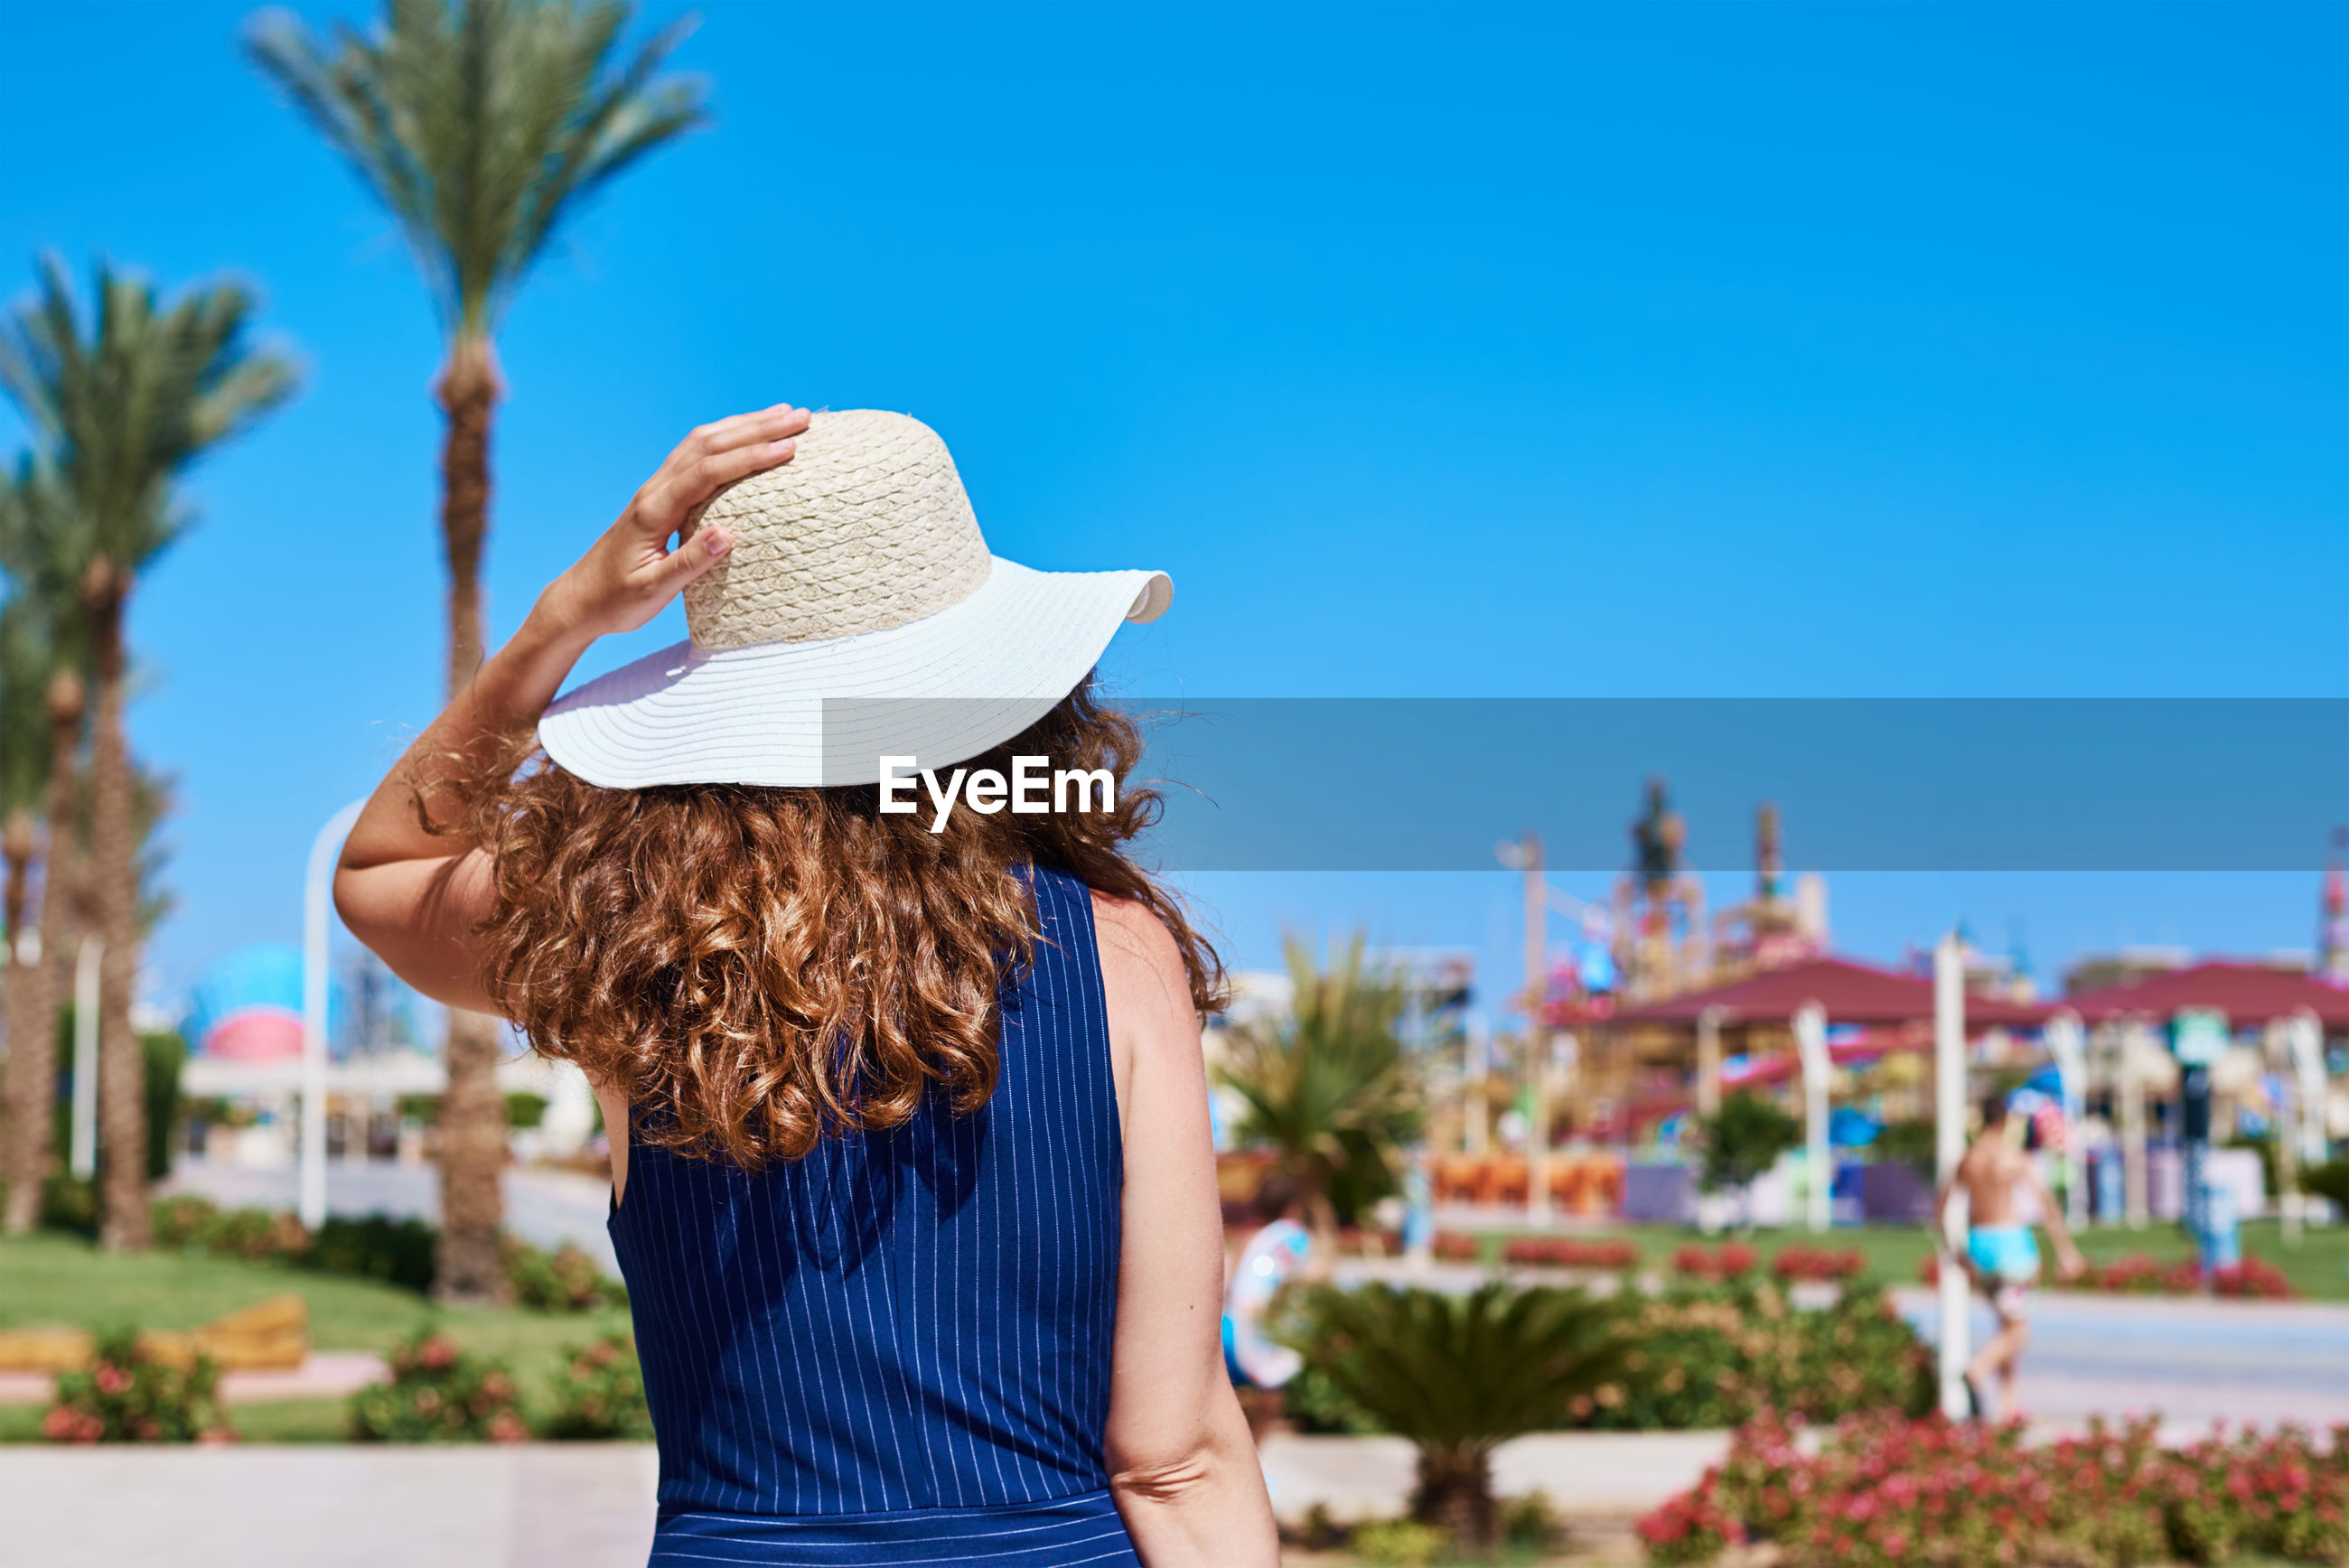 Rear view of woman wearing hat against blue sky